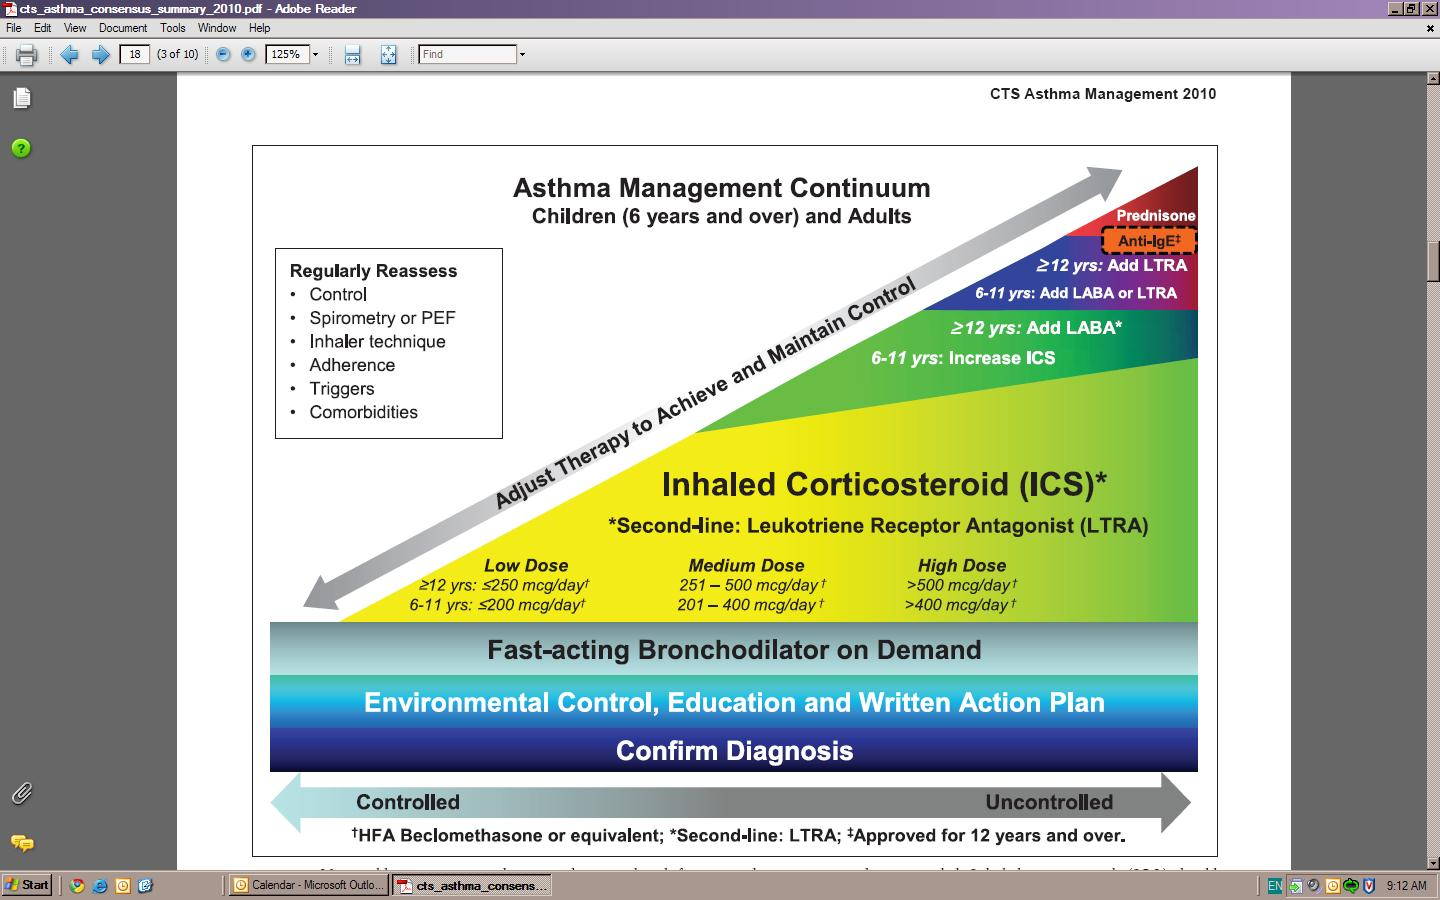 Canadian Thoracic Society Asthma Management Continuum – 2010 Consensus Summary for children six years of age and over, and adults